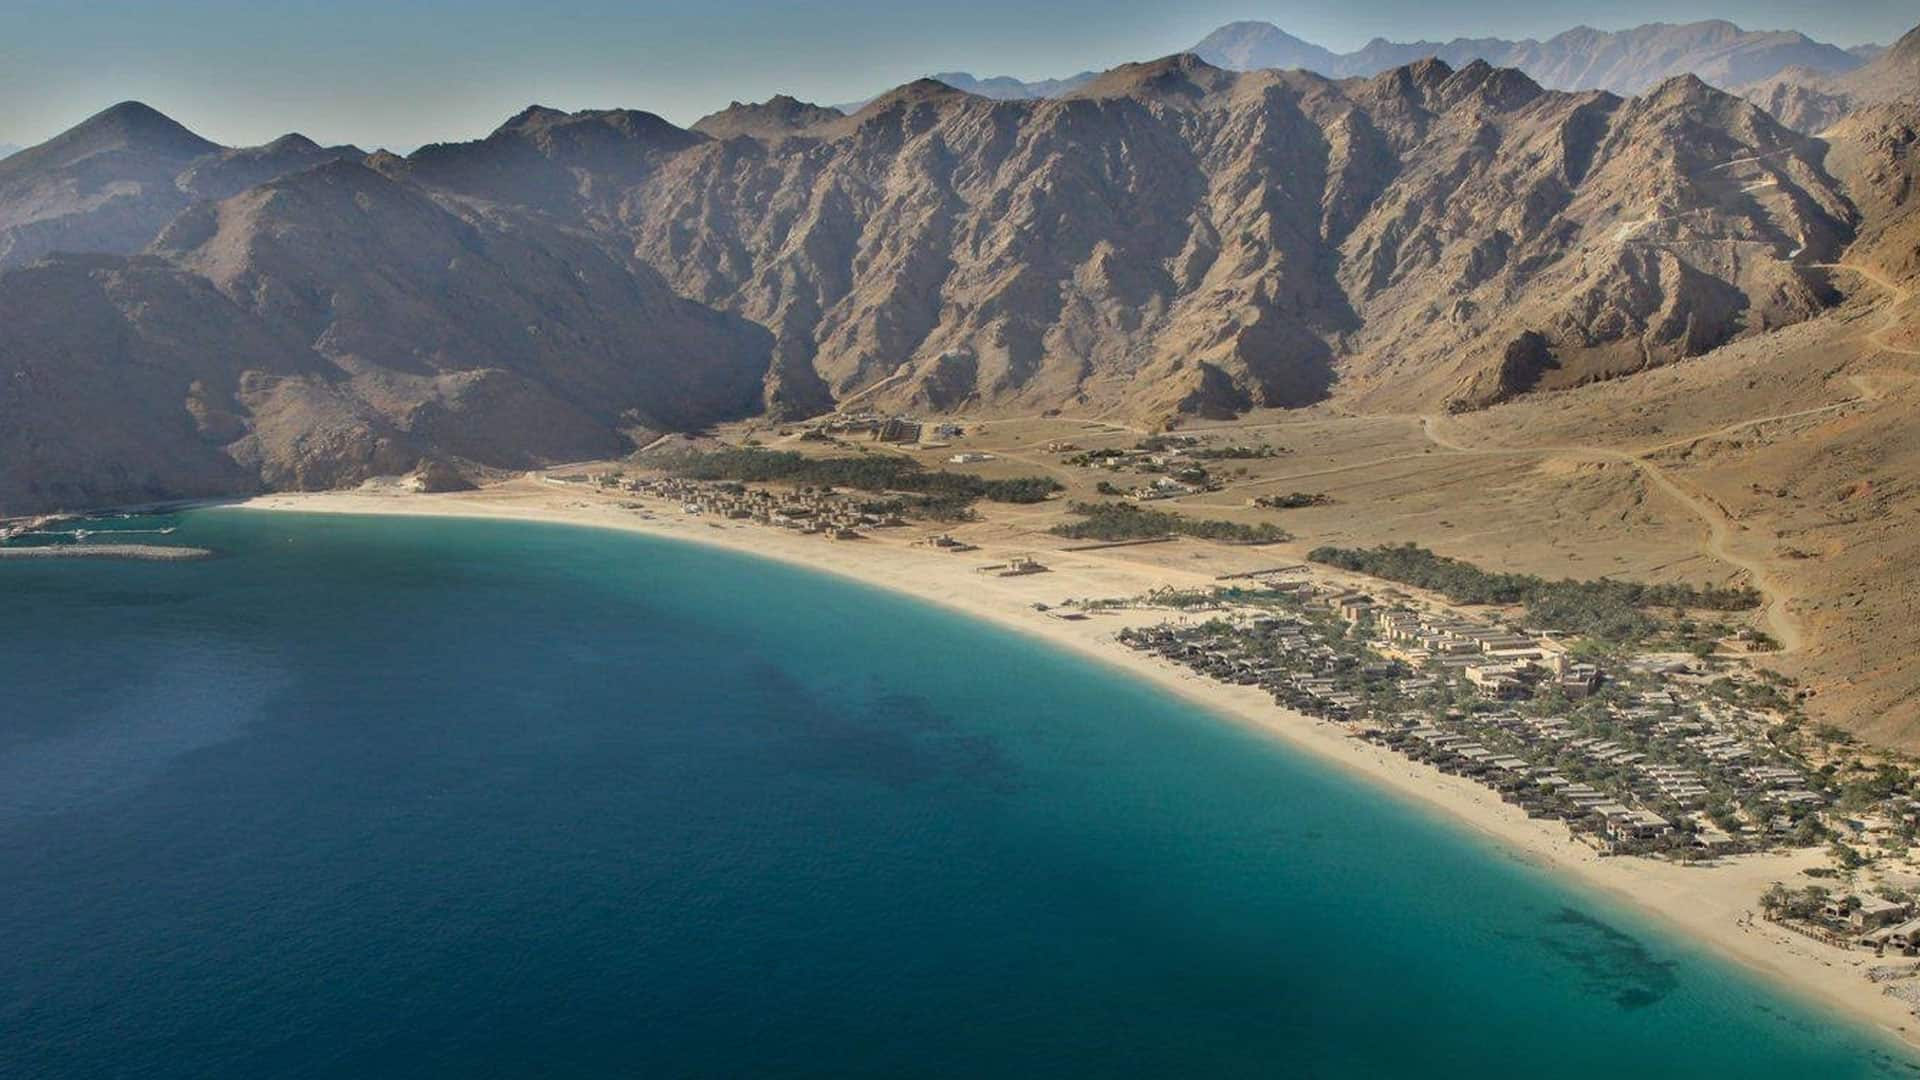 Six Senses Resort Zighy Bay, Musandam, Oman